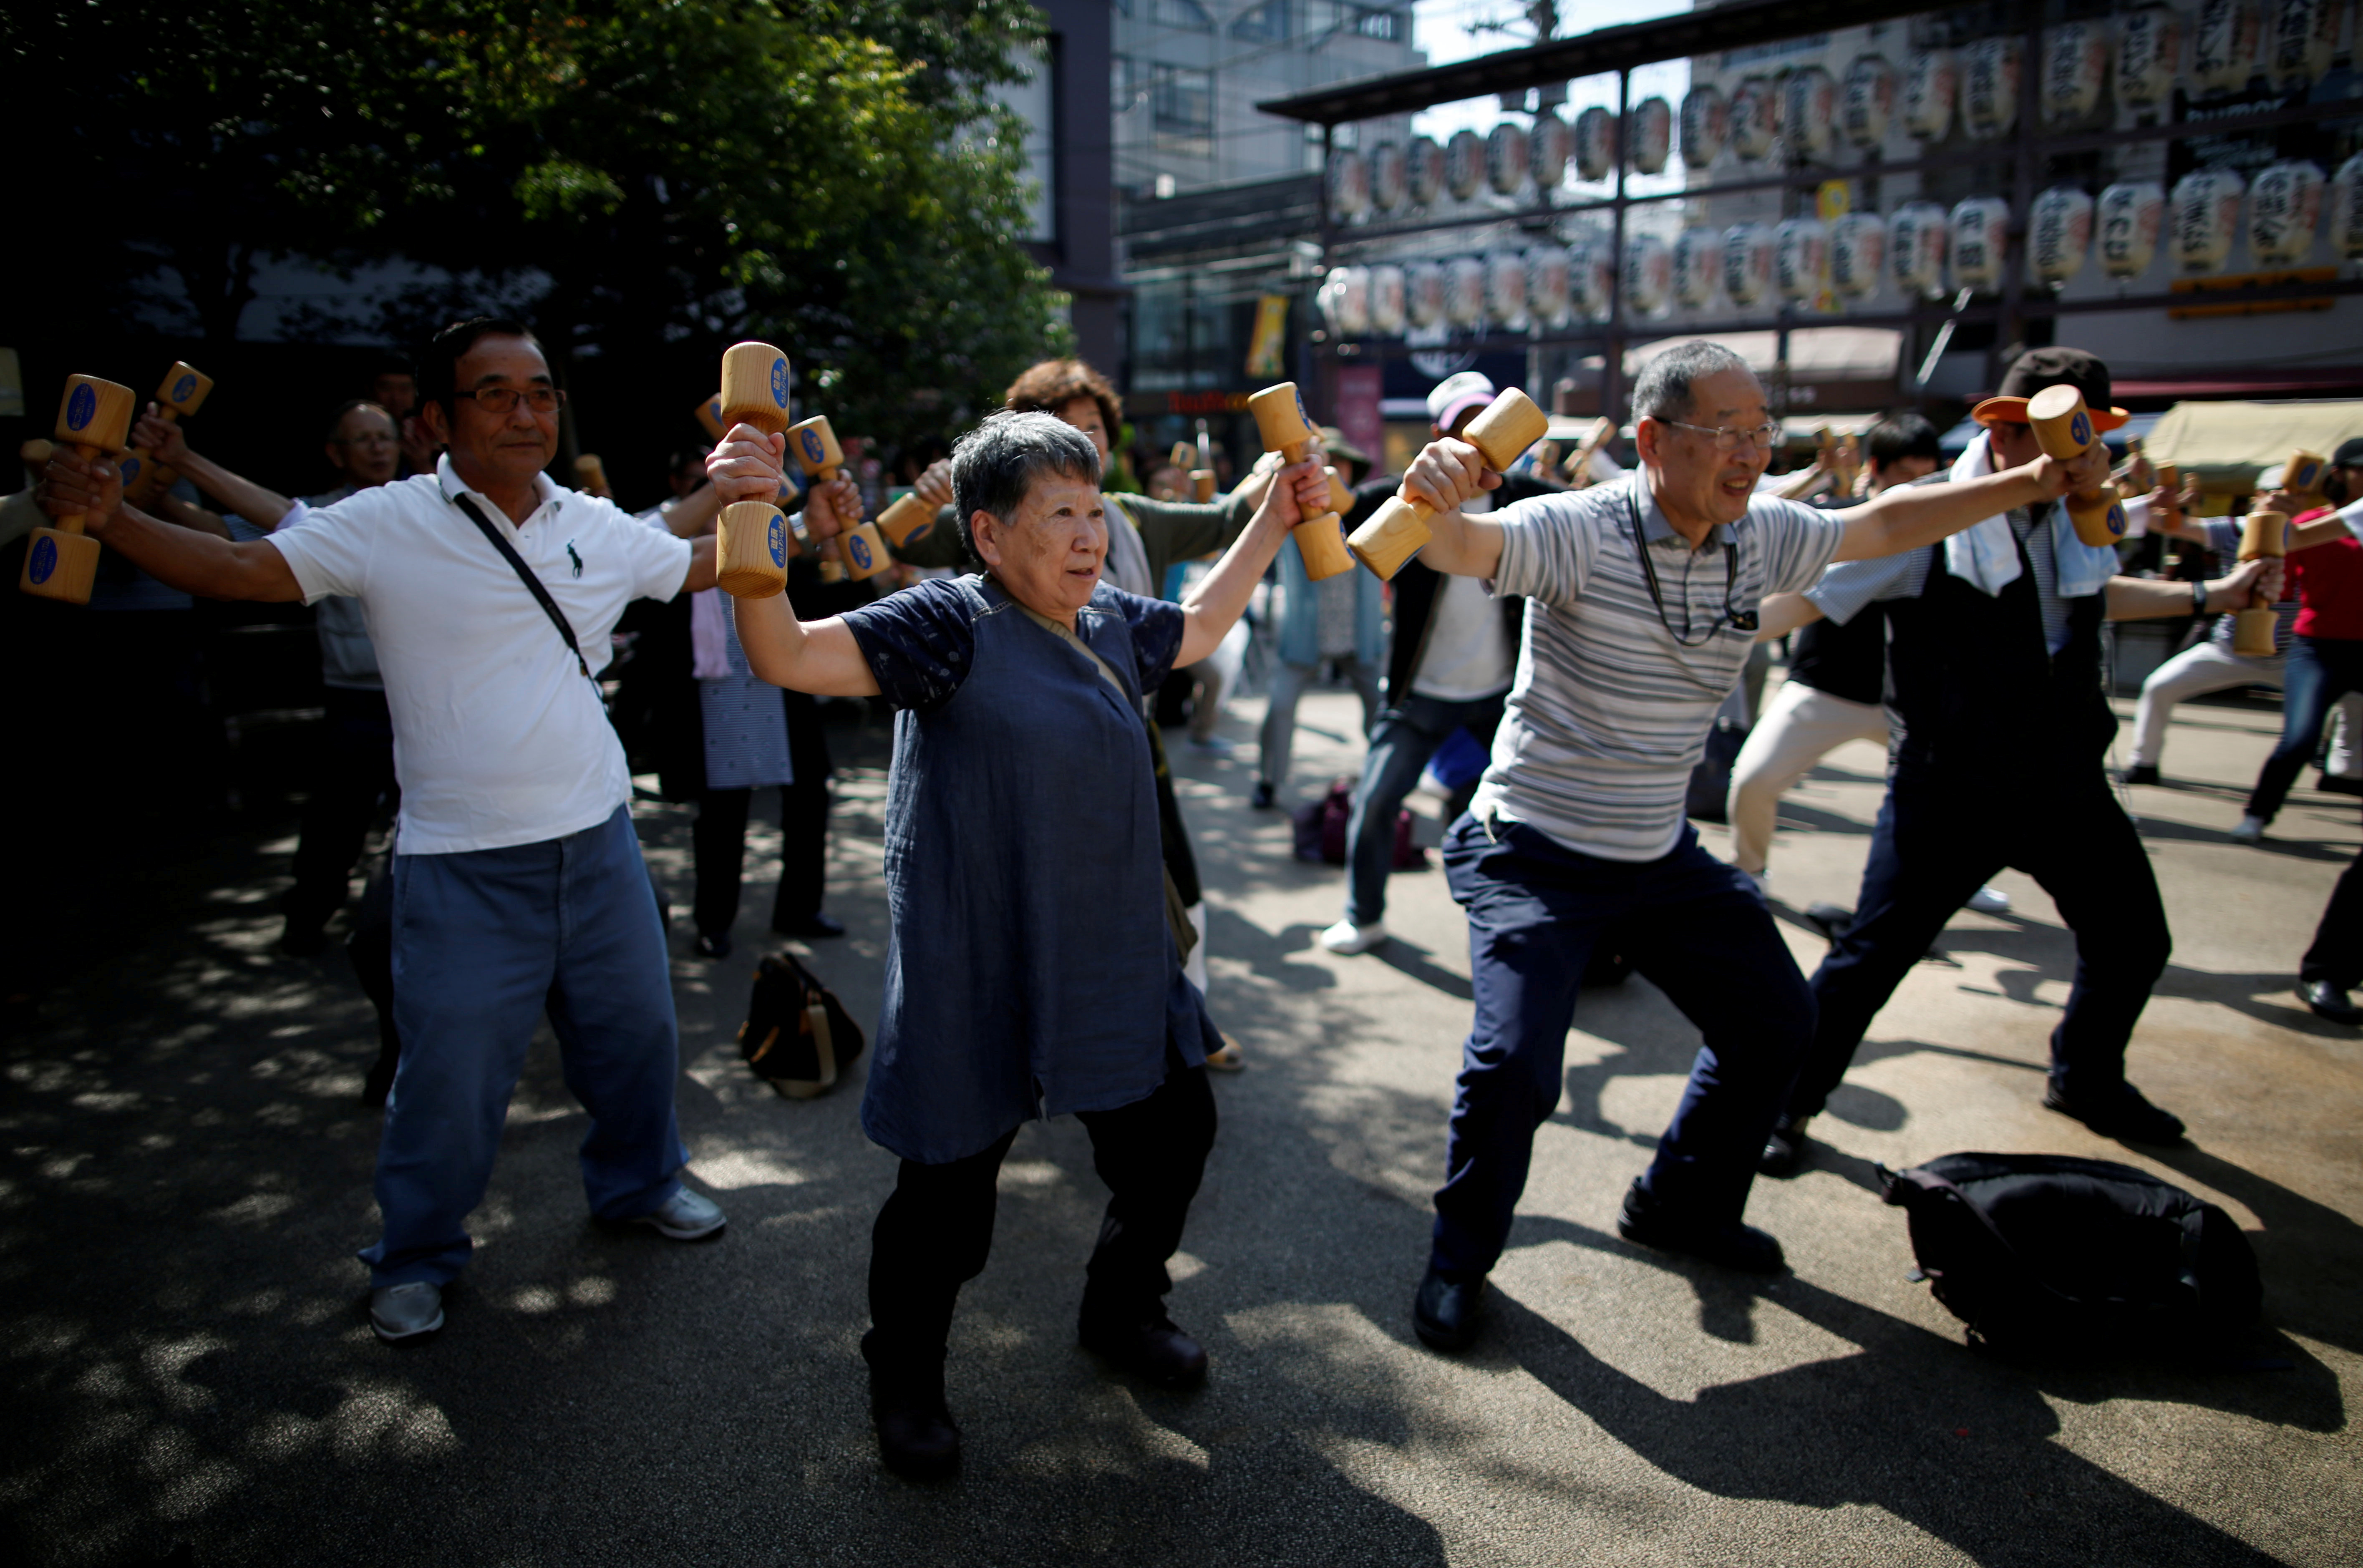 """Participants including elderly and middle-aged people exercise with wooden dumbbells during a health promotion event to mark Japan's """"Respect for the Aged Day"""" at a temple in Tokyo's Sugamo district, an area popular among the Japanese elderly, September 17, 2018. REUTERS/Issei Kato      TPX IMAGES OF THE DAY - RC14EDF2A330"""